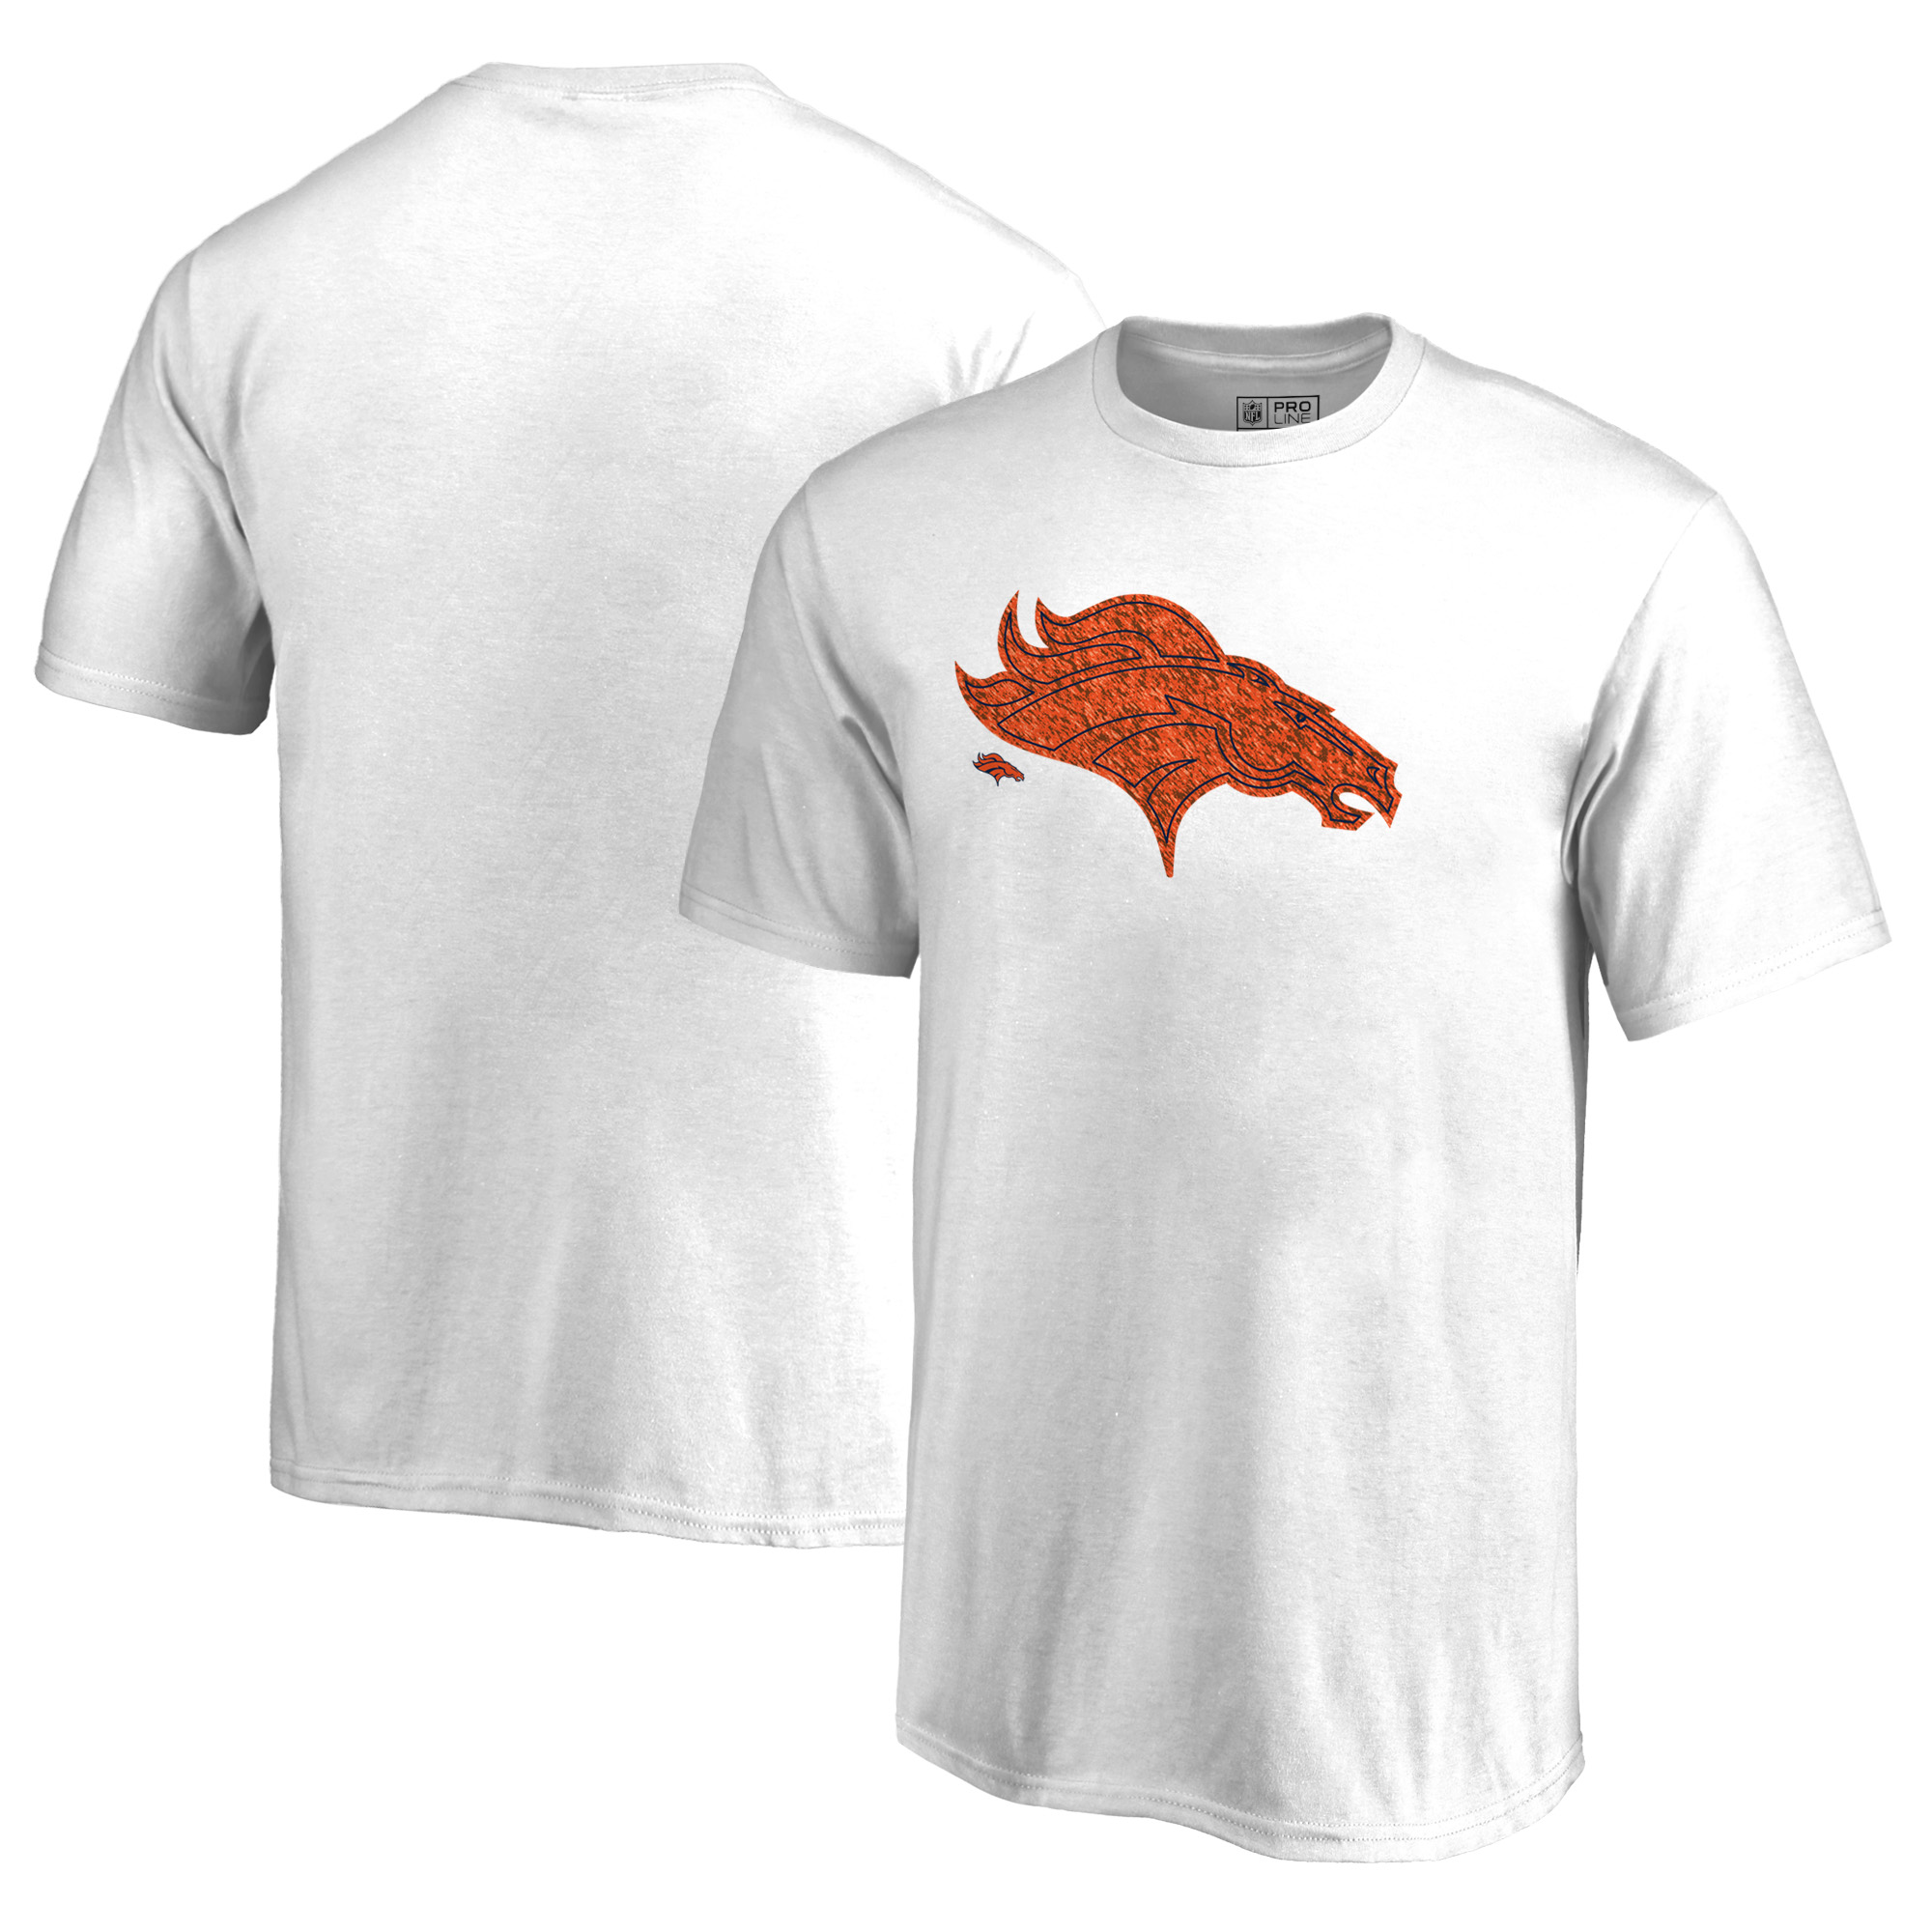 Denver Broncos NFL Pro Line by Fanatics Branded Youth Training Camp Hookup T-Shirt - White